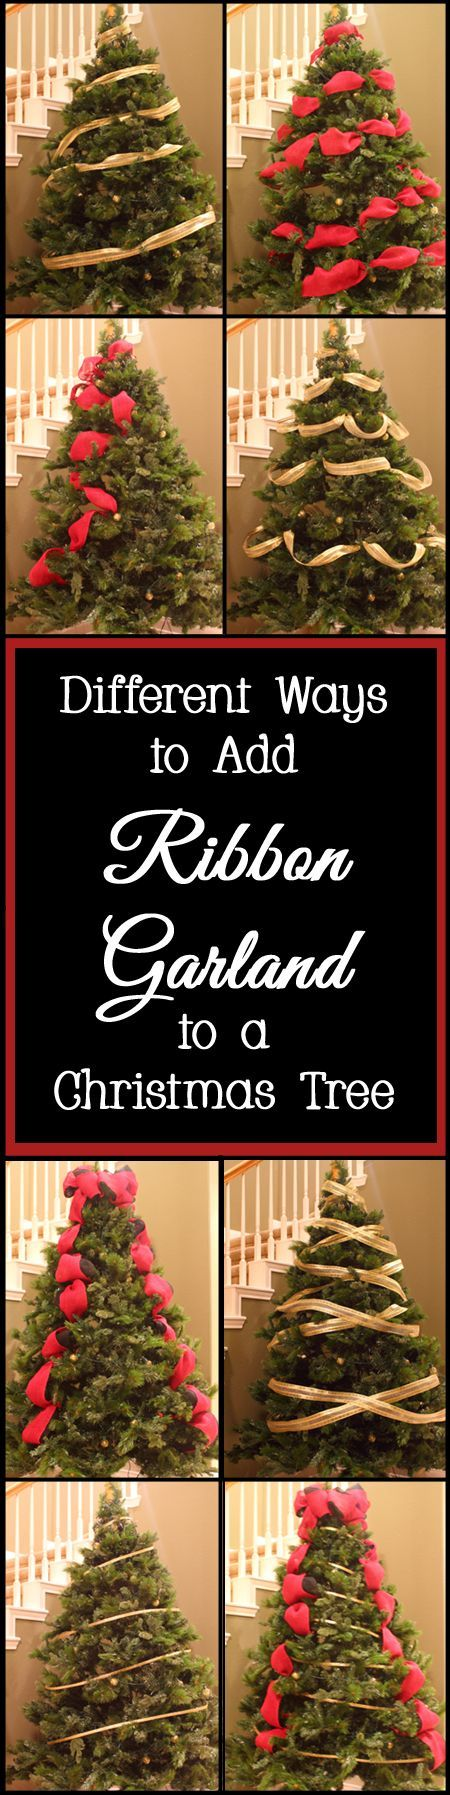 Adding ribbon garland to a Christmas tree is one of the most challenging parts to decorating a Christmas tree - but it doesn't have to be!   Here are a few tips, tricks, and ideas for how to add ribbon garland to a Christmas tree.